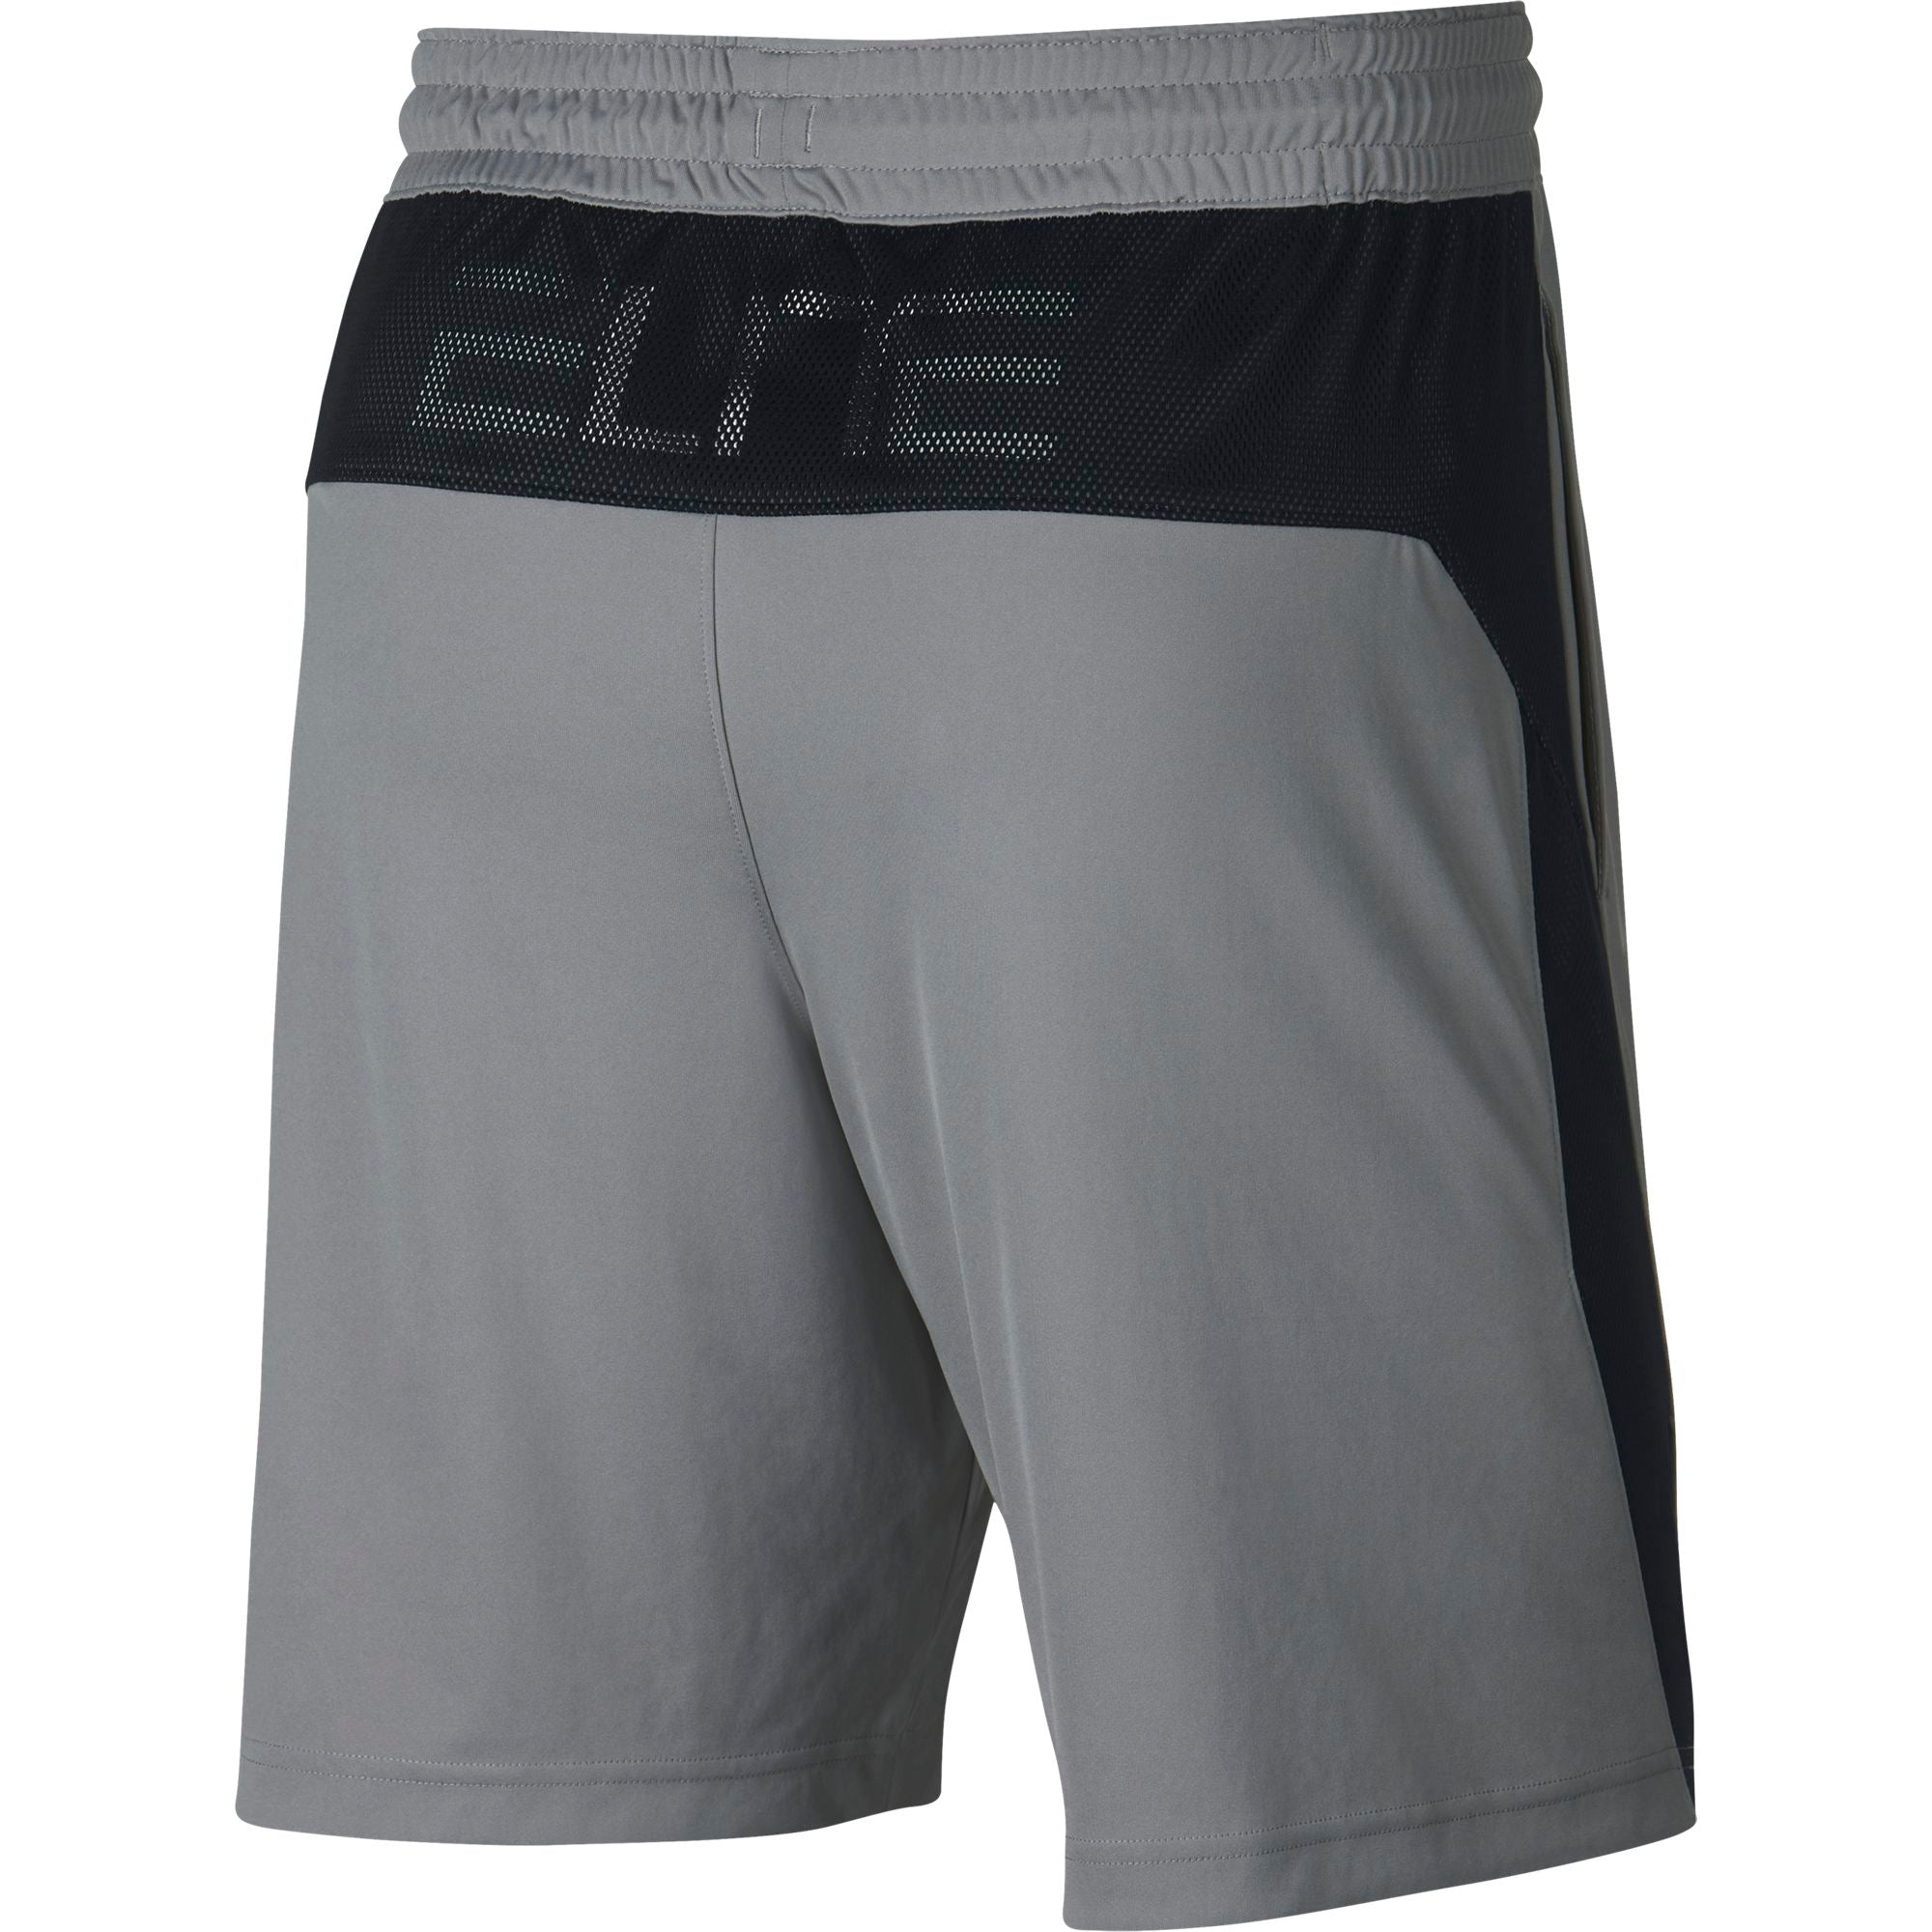 Nike Basketball Dry Shorts - Atmosphere Grey/Gunsmoke/Black